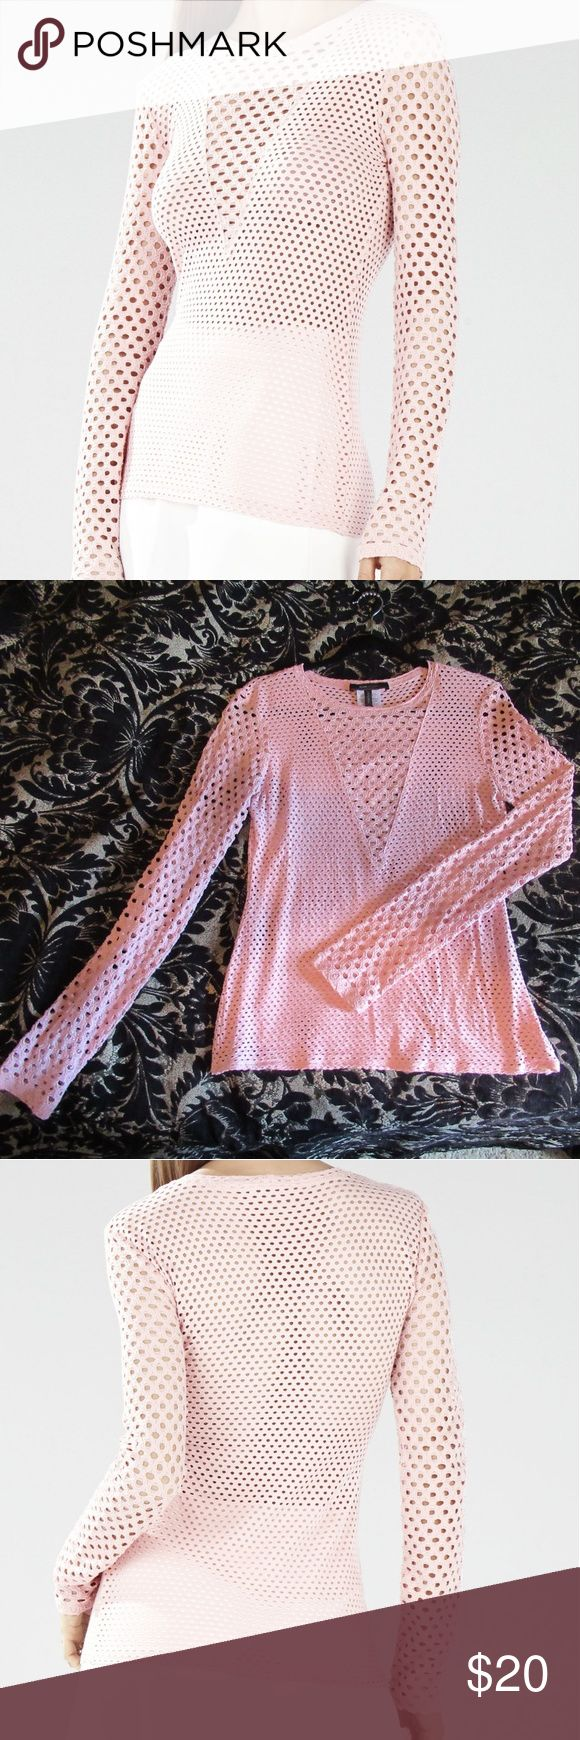 BCBGMaxAzria Top BCBGMaxAzria light pink mesh top - Size Large - Stretchy fabric - The photos with the model show the actual color better. BCBGMaxAzria Tops Tees - Long Sleeve